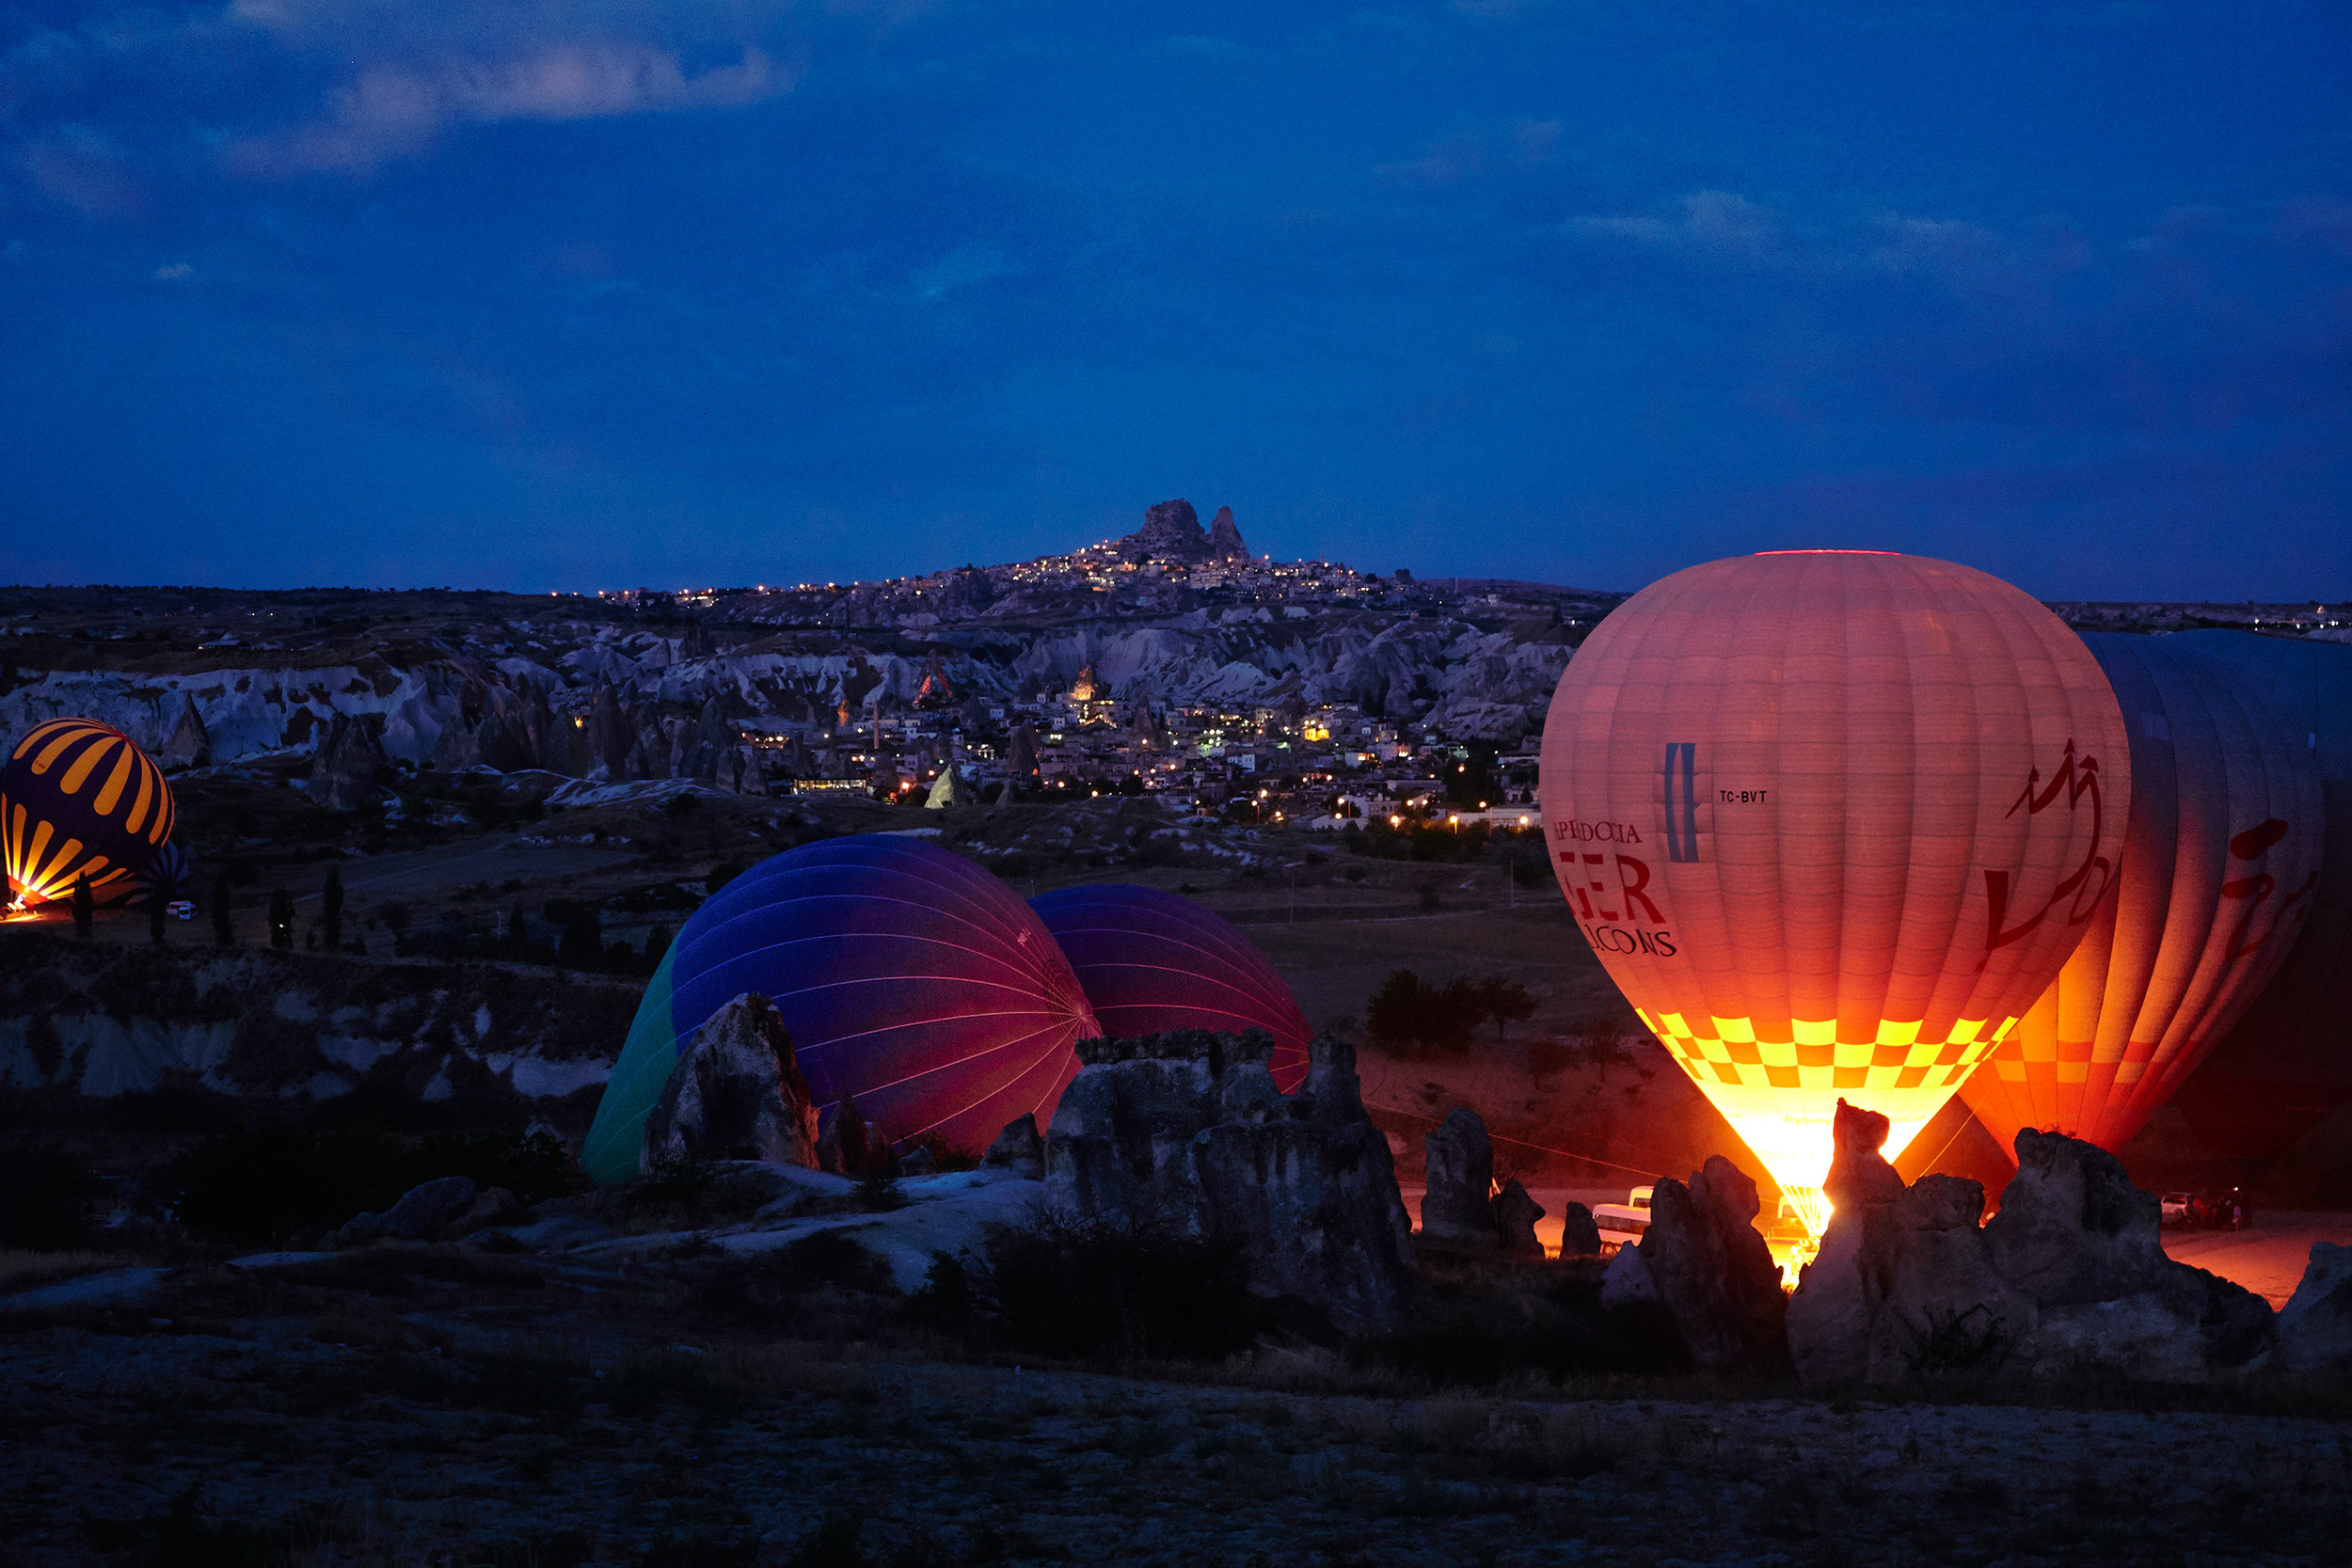 Cappadocia balloons with Uchisar and Goreme in the background